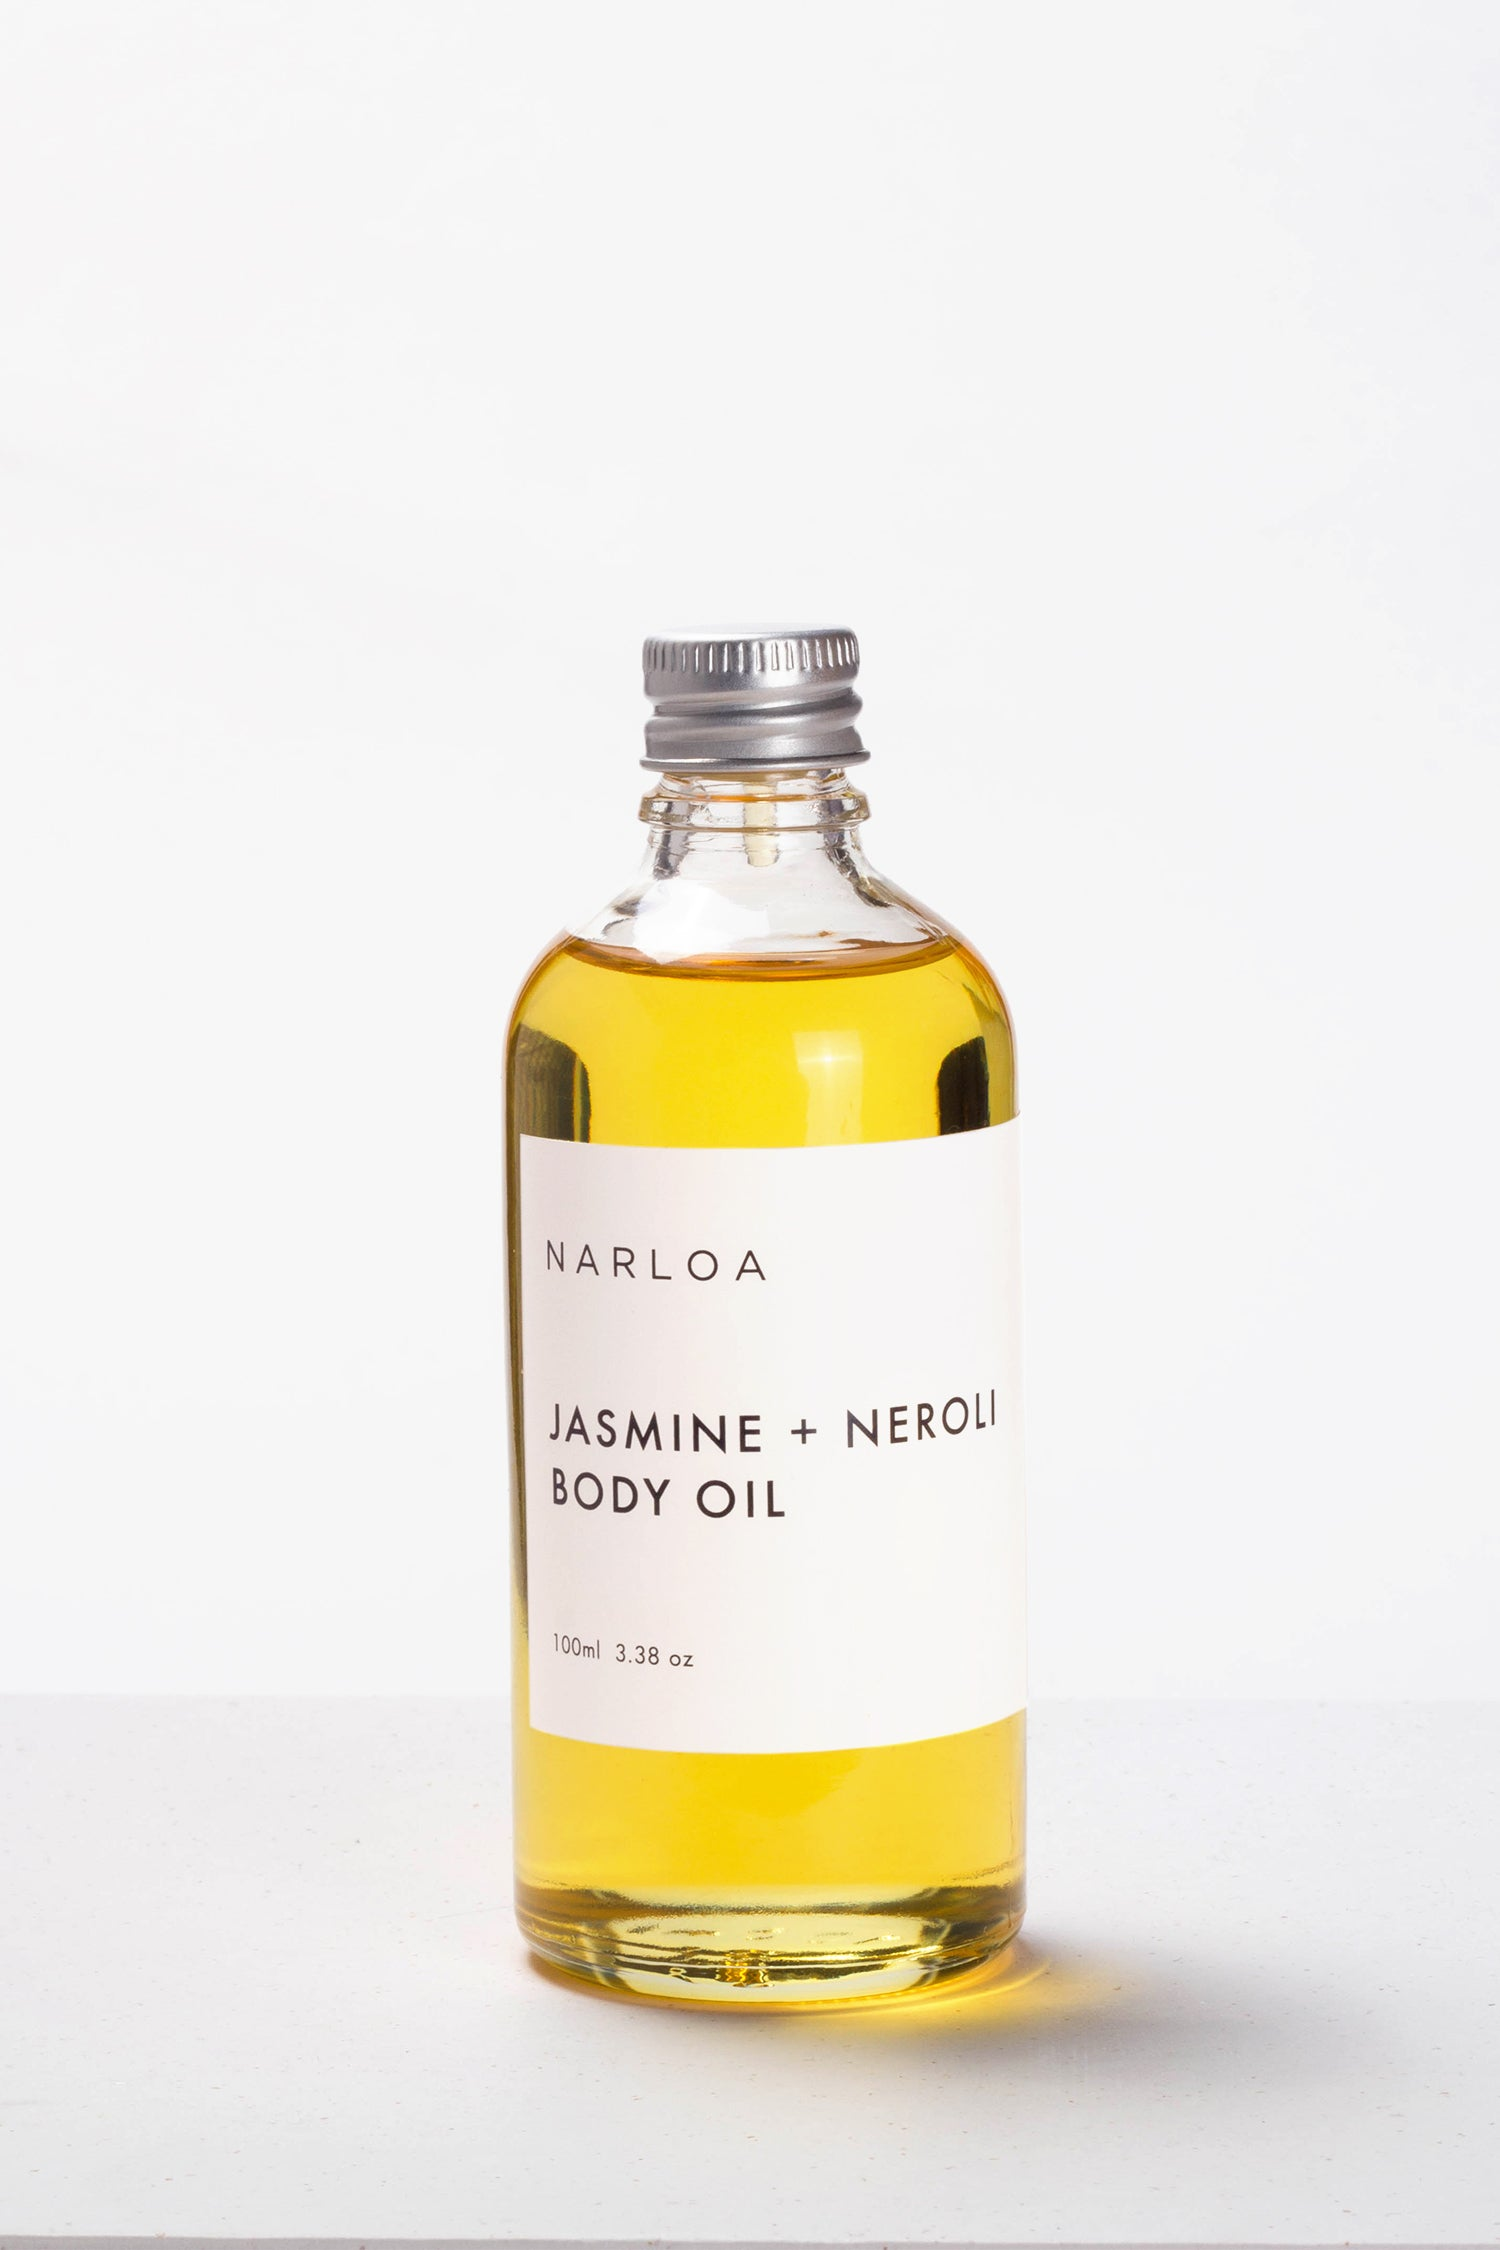 JASMINE + NEROLI BODY OIL 100ml